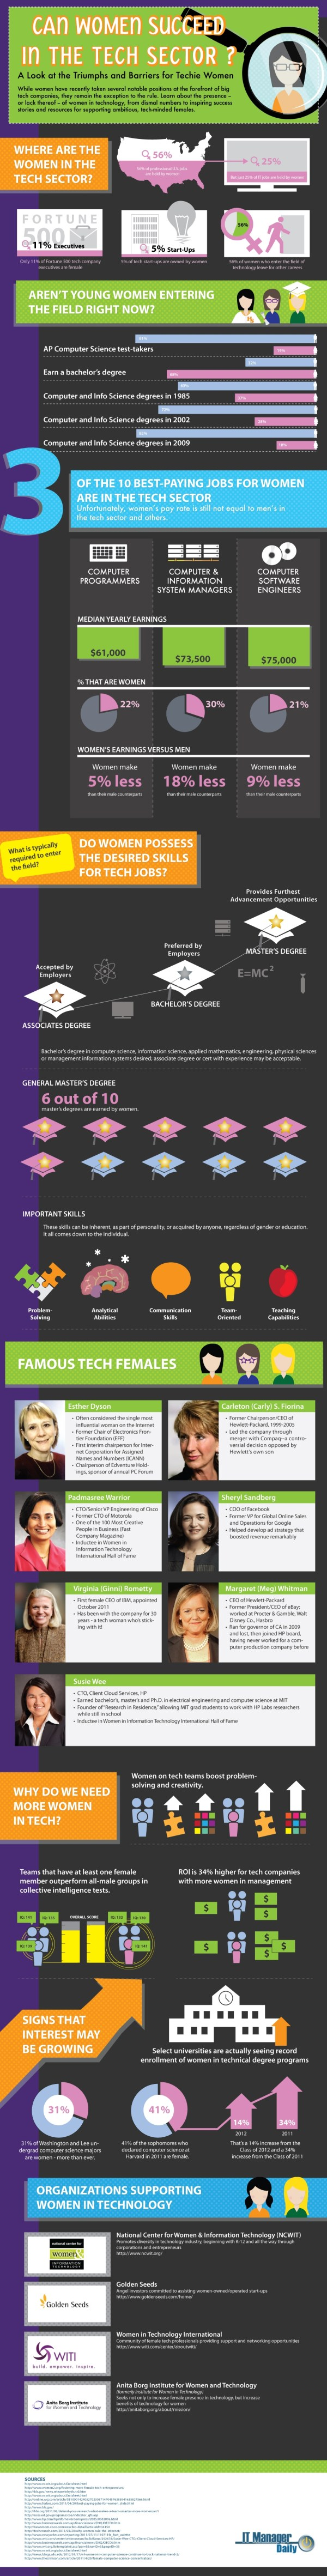 Women In Technology Infographic Triumphs And Barriers